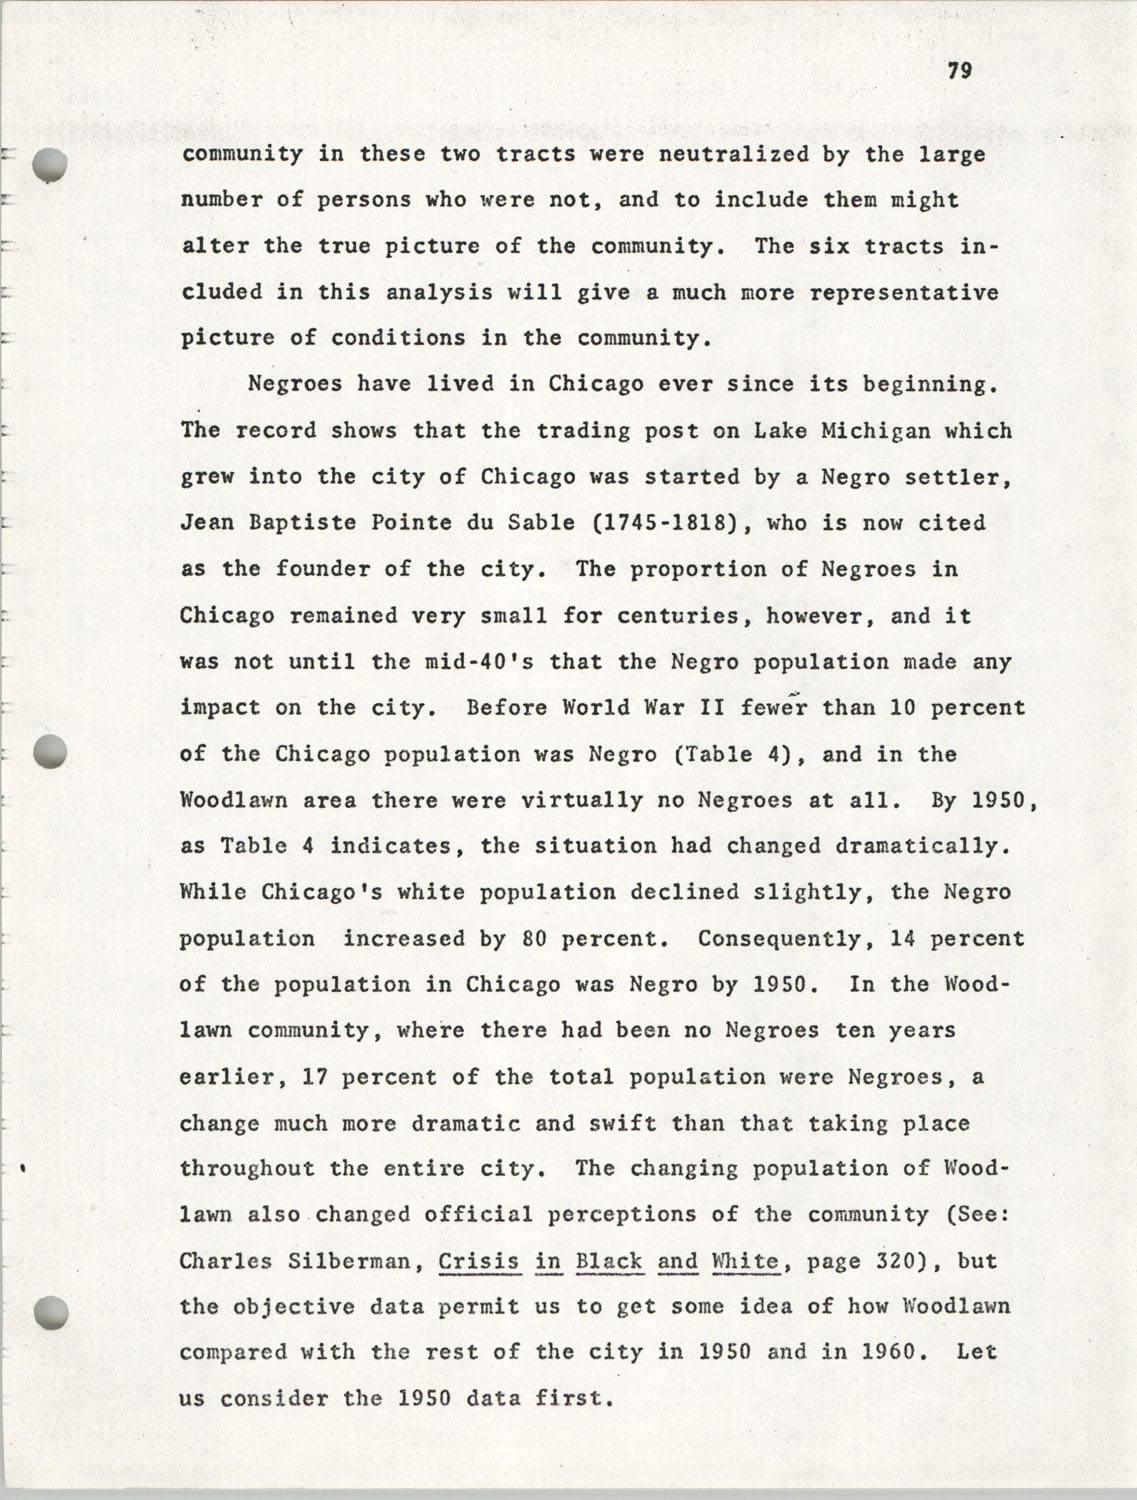 Citizen Participation. Democracy and Social Change, December 1, 1969, Page 79